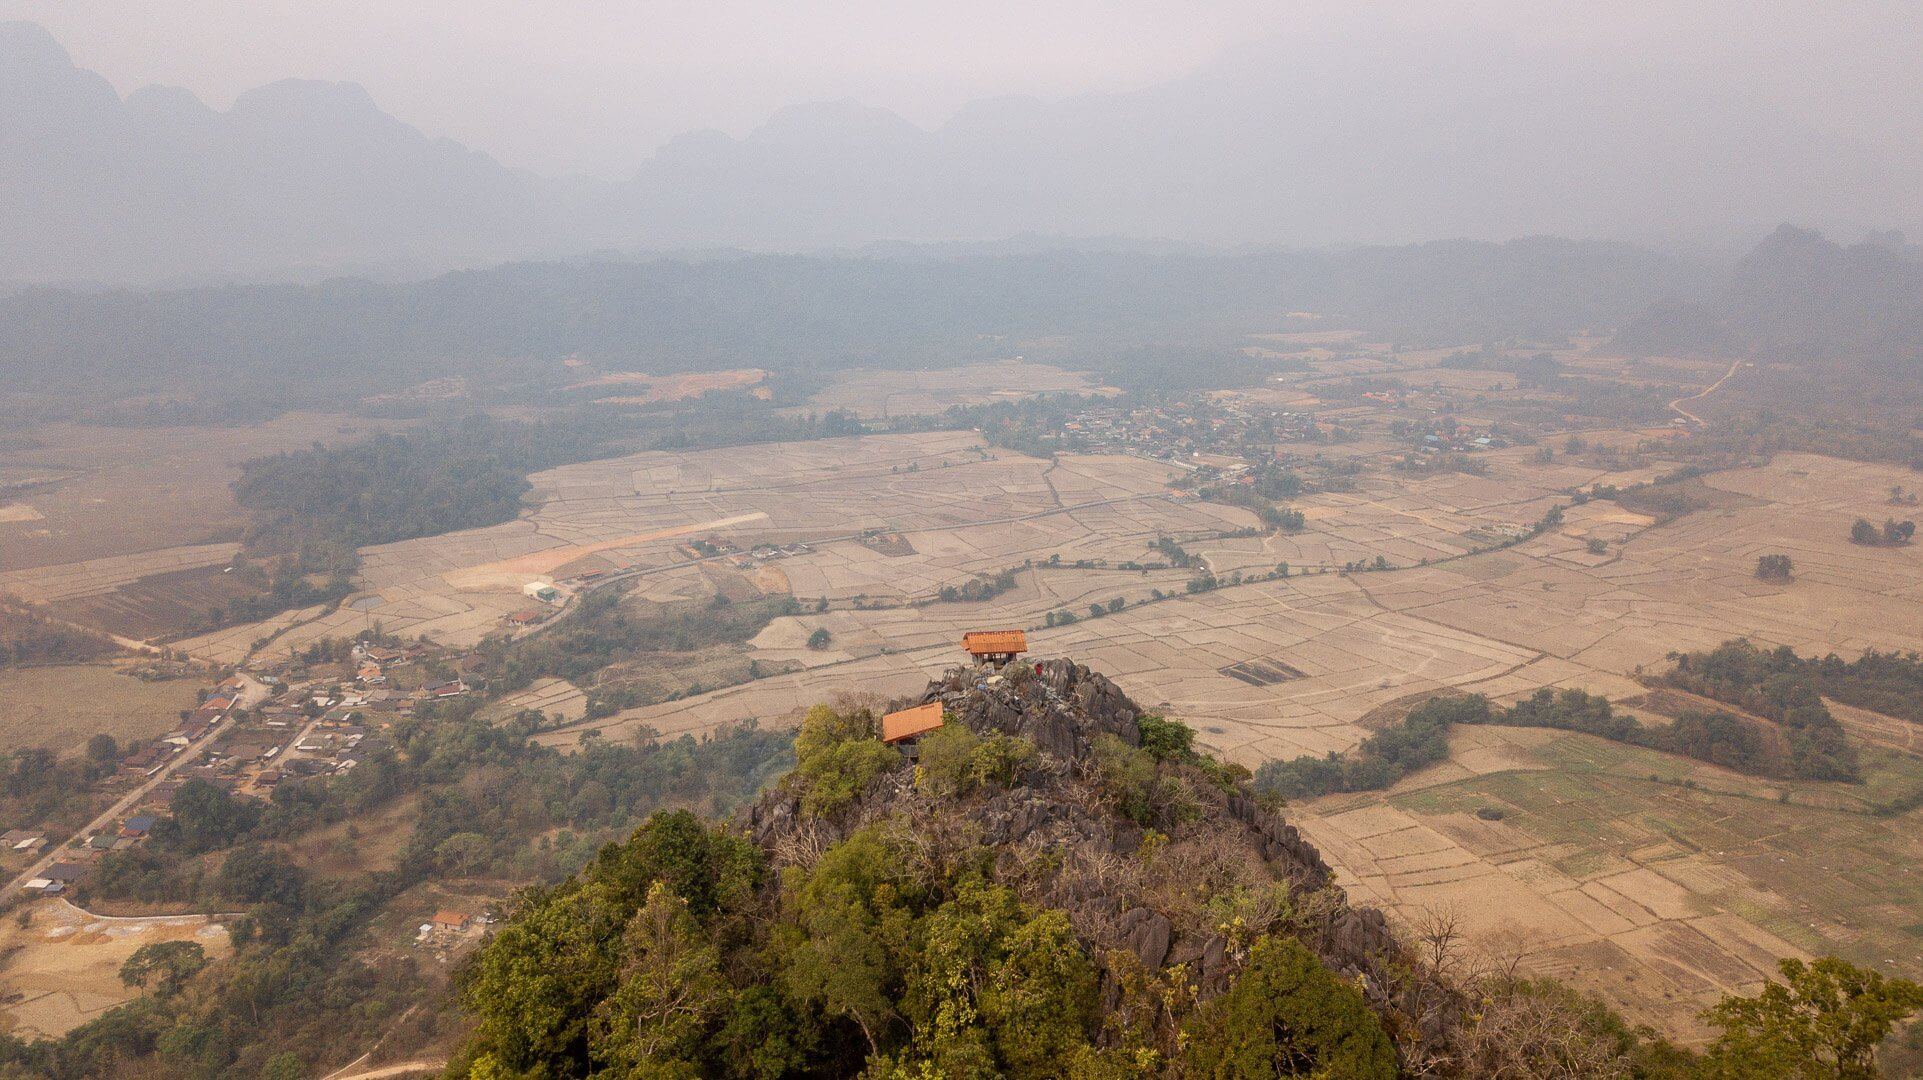 The viewing houses at the Pha Ngern viewpoint in Vang Vieng